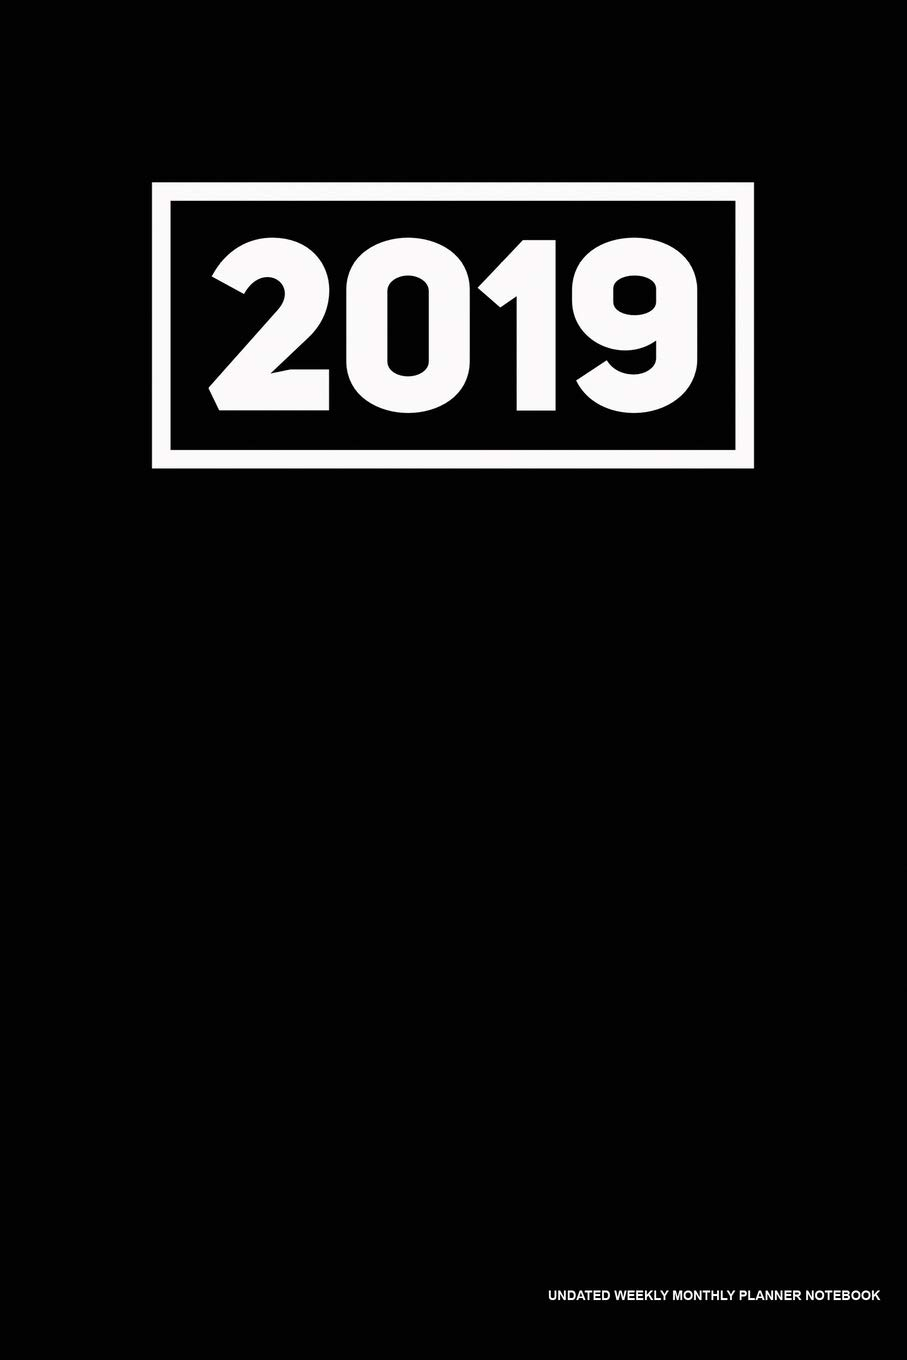 2019 Undated Weekly Monthly Planner Notebook: Classic Black ...